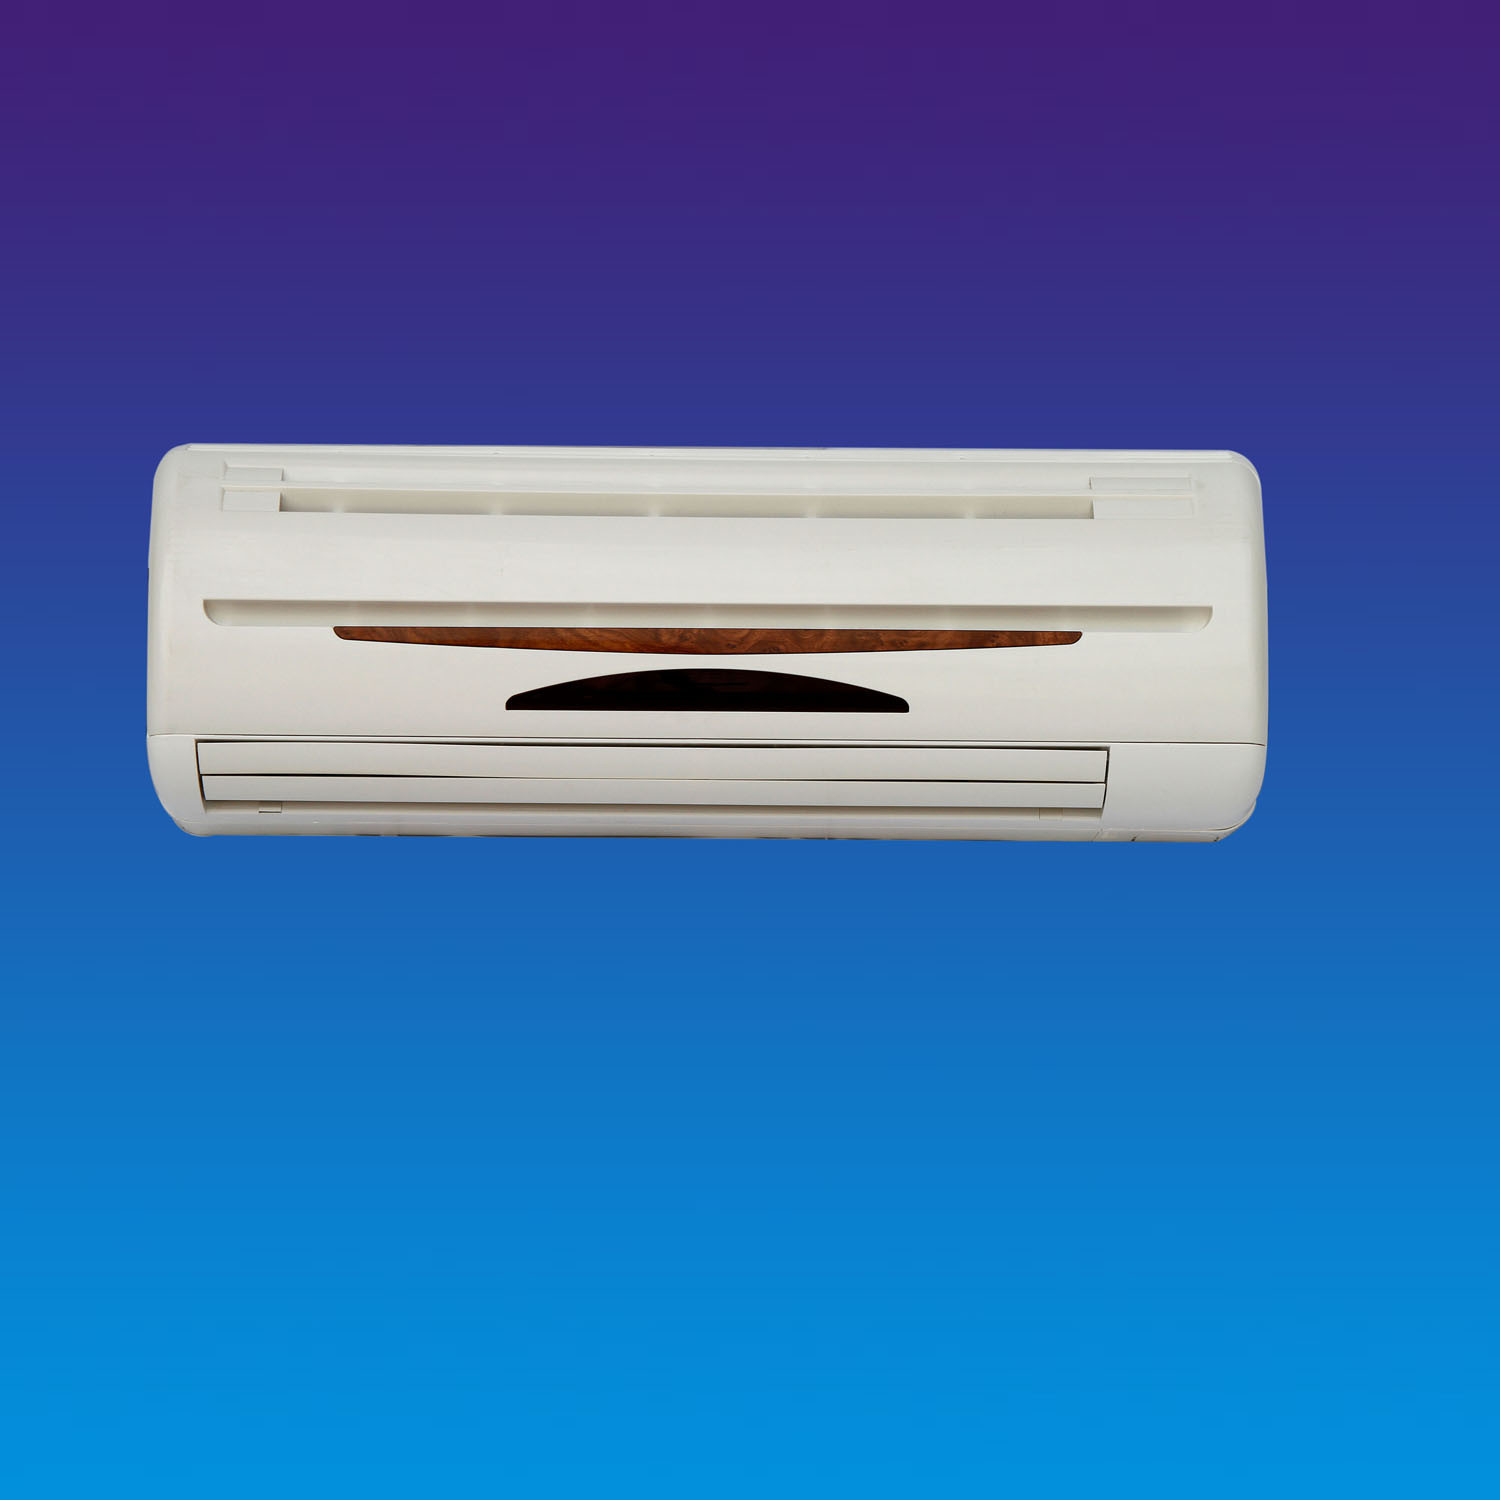 Portable Air Conditioning Units: Portable Air Conditioning Units 18000  #0C74BF